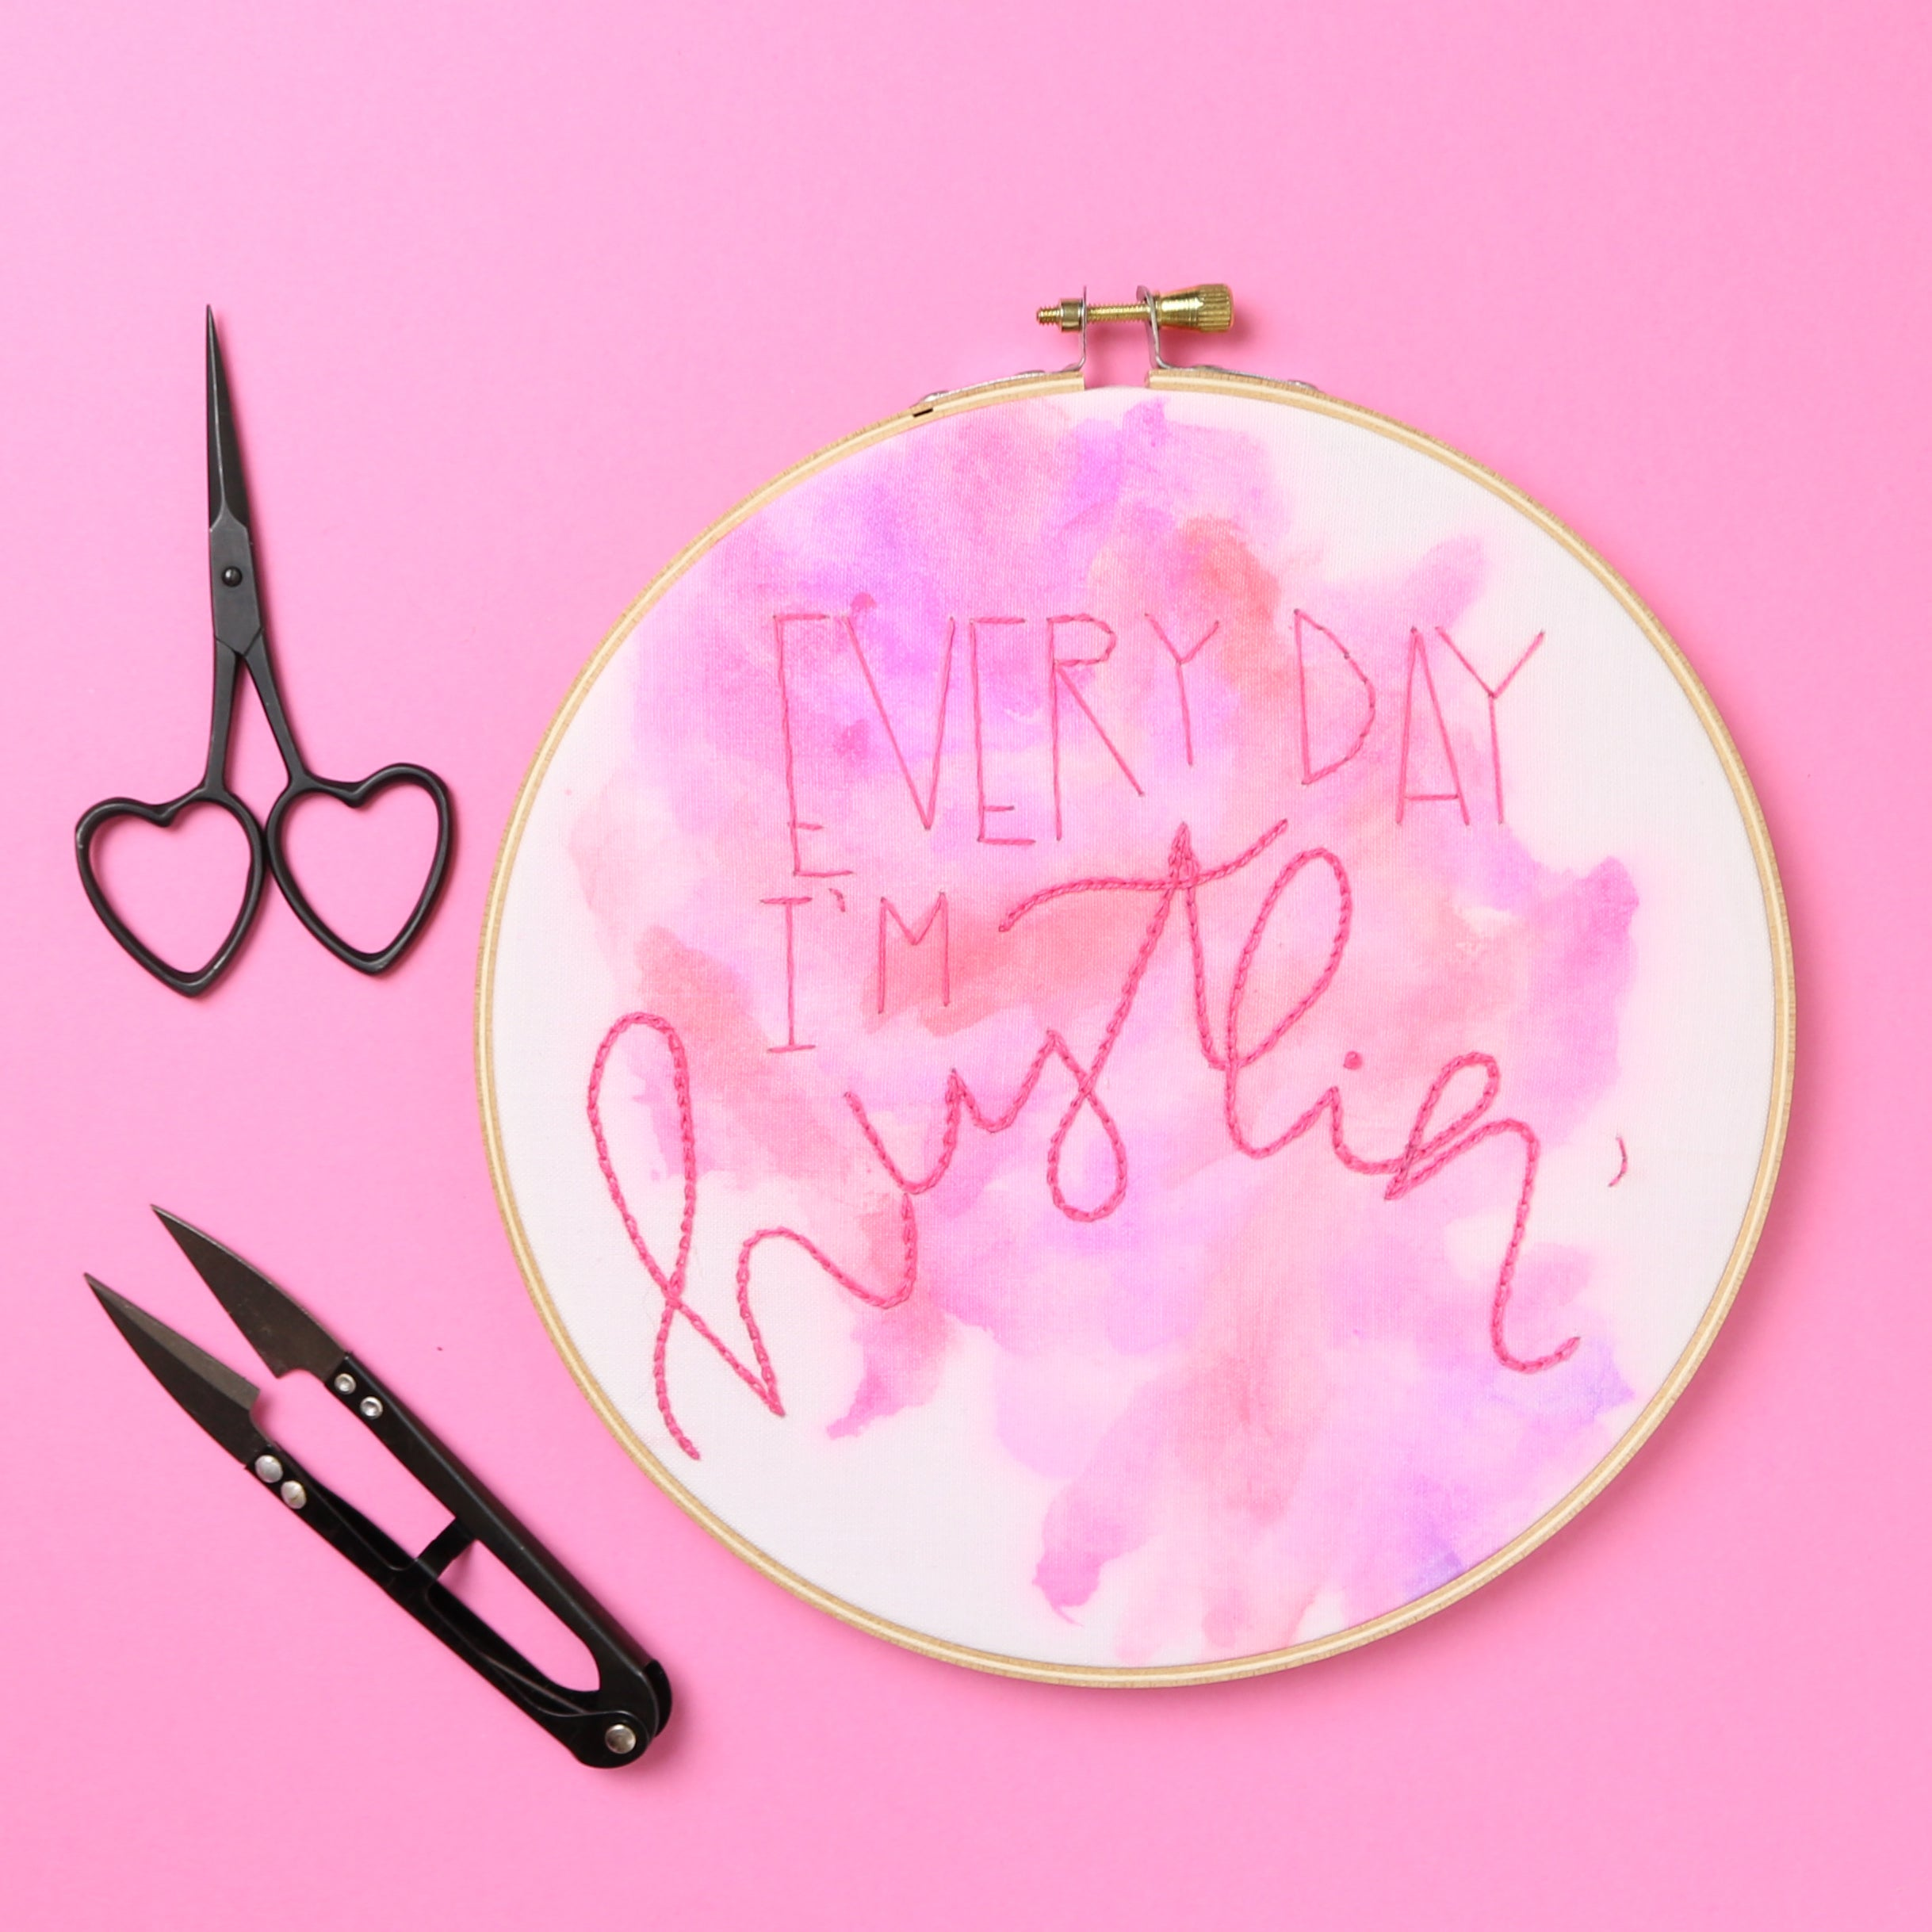 Every Day I'm Hustlin' Embroidery Hoop